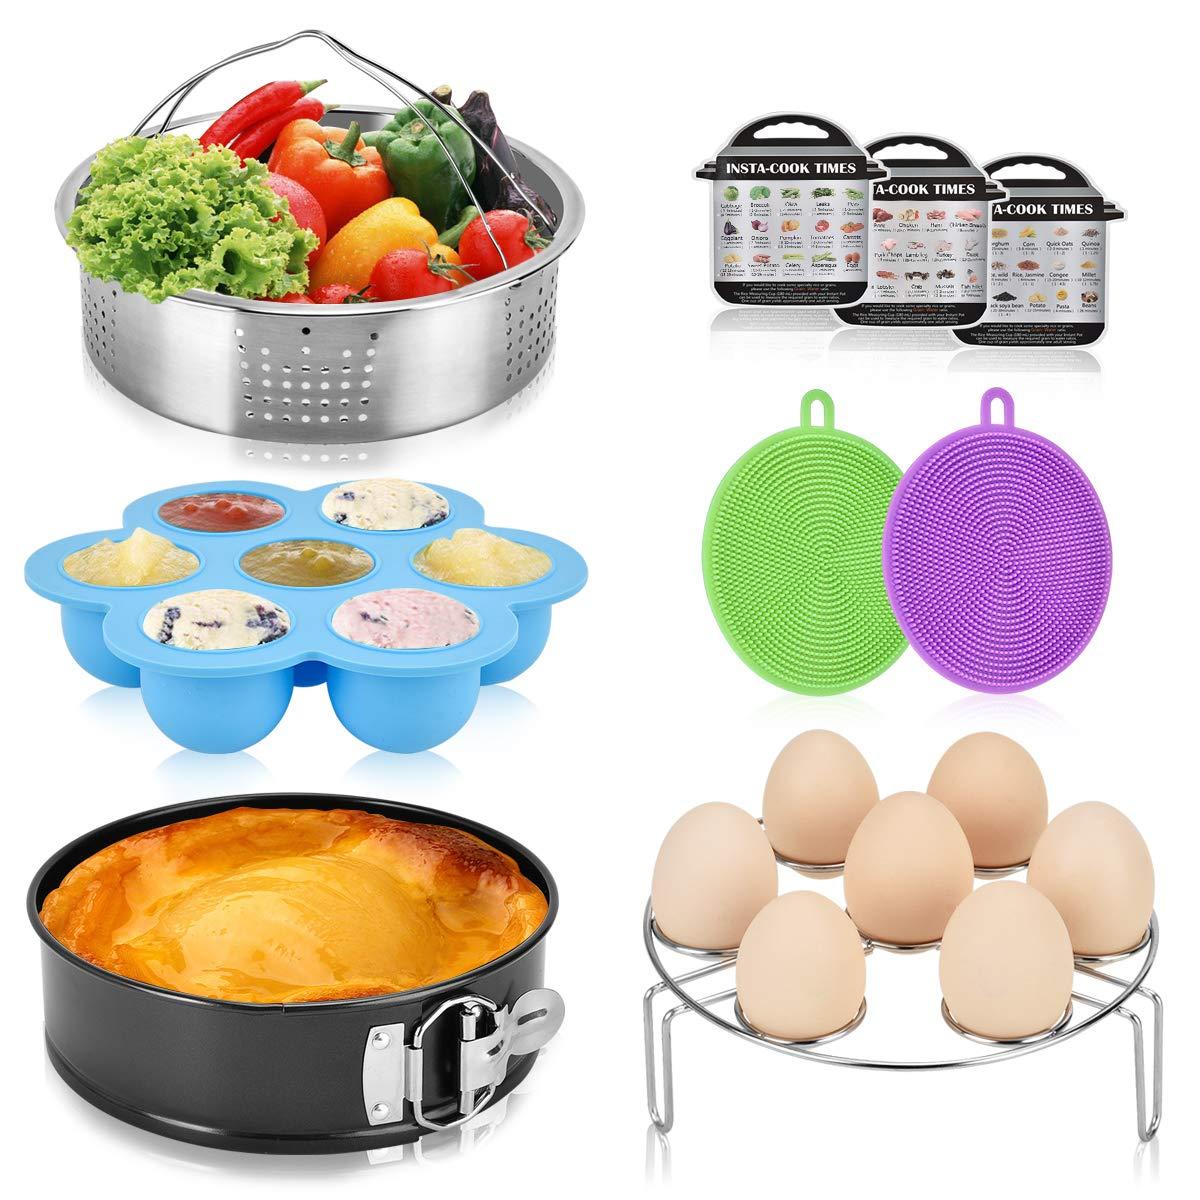 Accessories Set for Instant Pot Fit 6 Qt 8 Quart InstaPot Pressure Cooker. Steamer Basket, Egg Steamer Rack, Egg Bites Molds, Non-Stick Springform Pan, Silicone Dish Sponge and Magnetic Cheat Sheets by Will Well